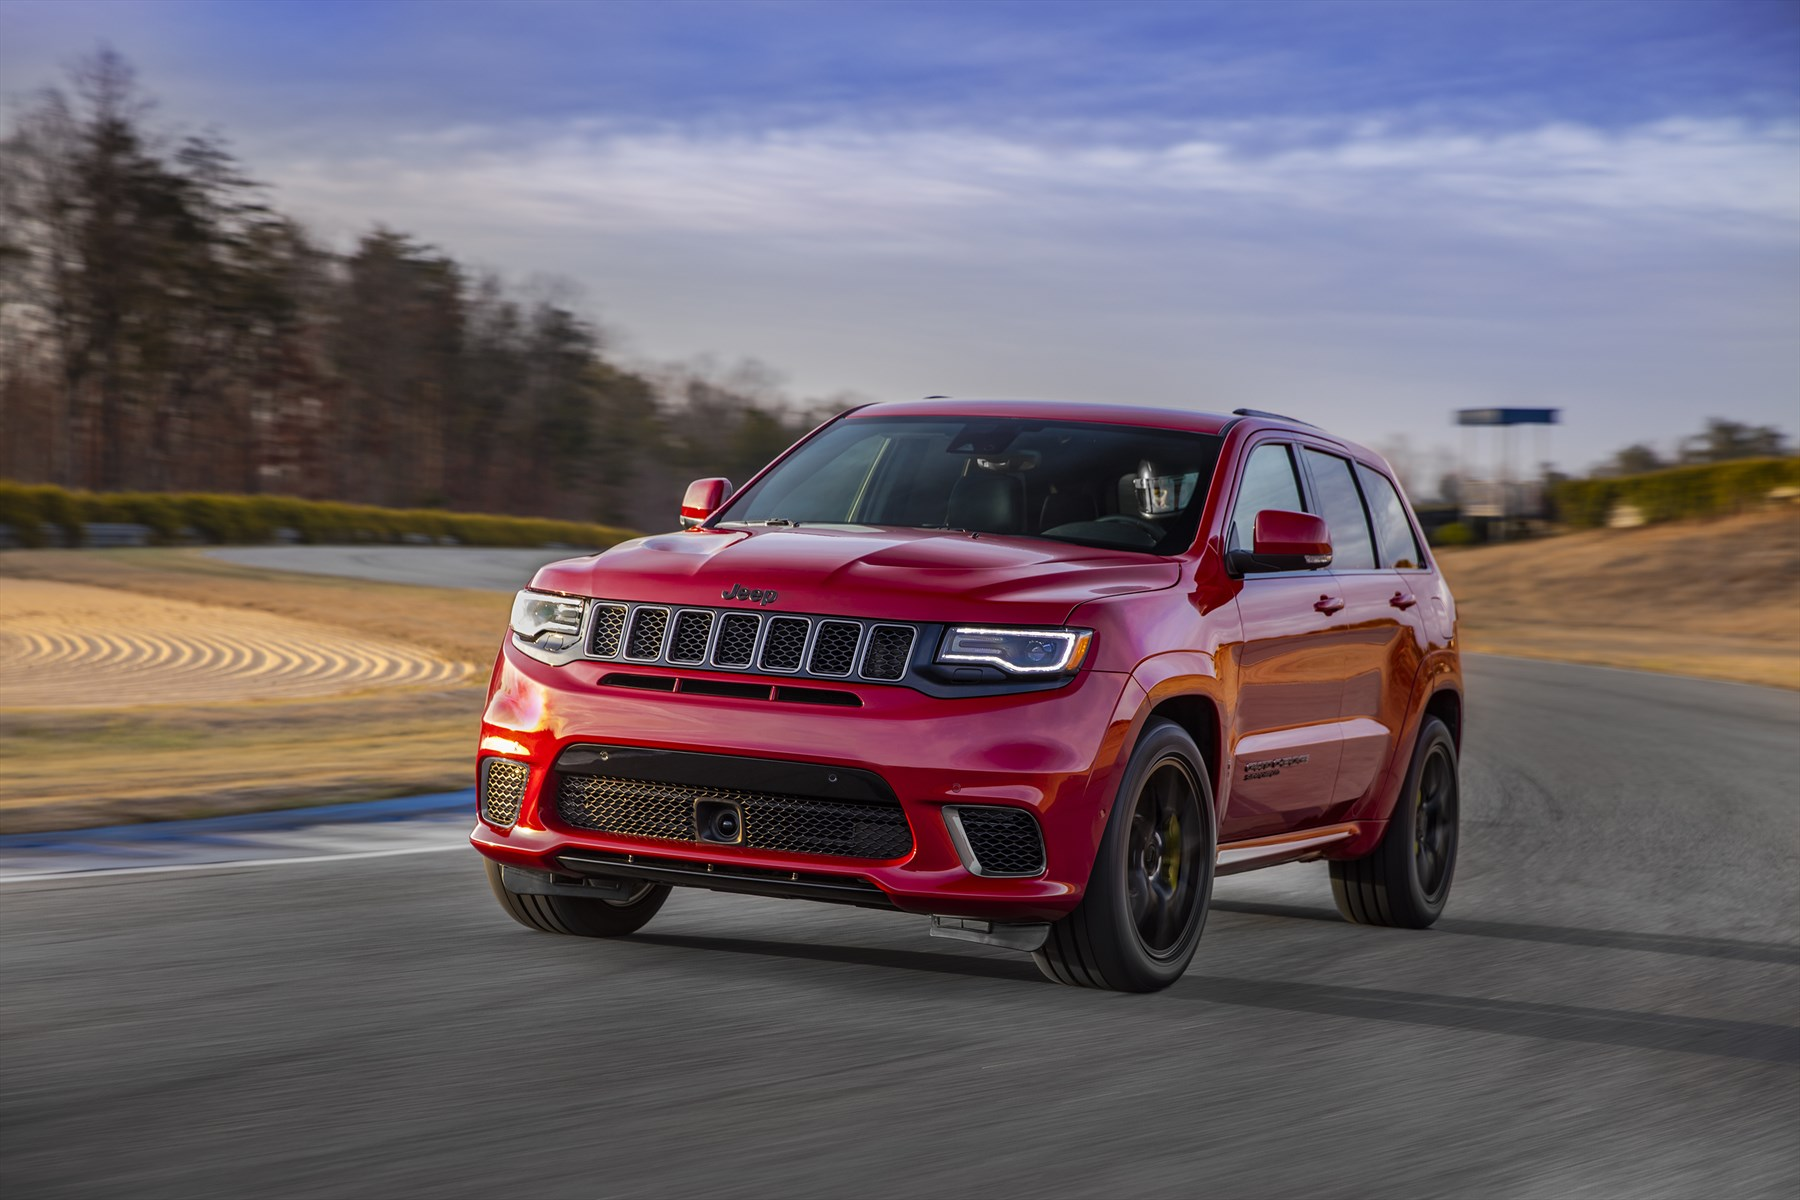 707 Horsepower 2018 Jeep Grand Cherokee Trackhawk The Most Powerful And Quickest Suv Ever John Williams Jeep